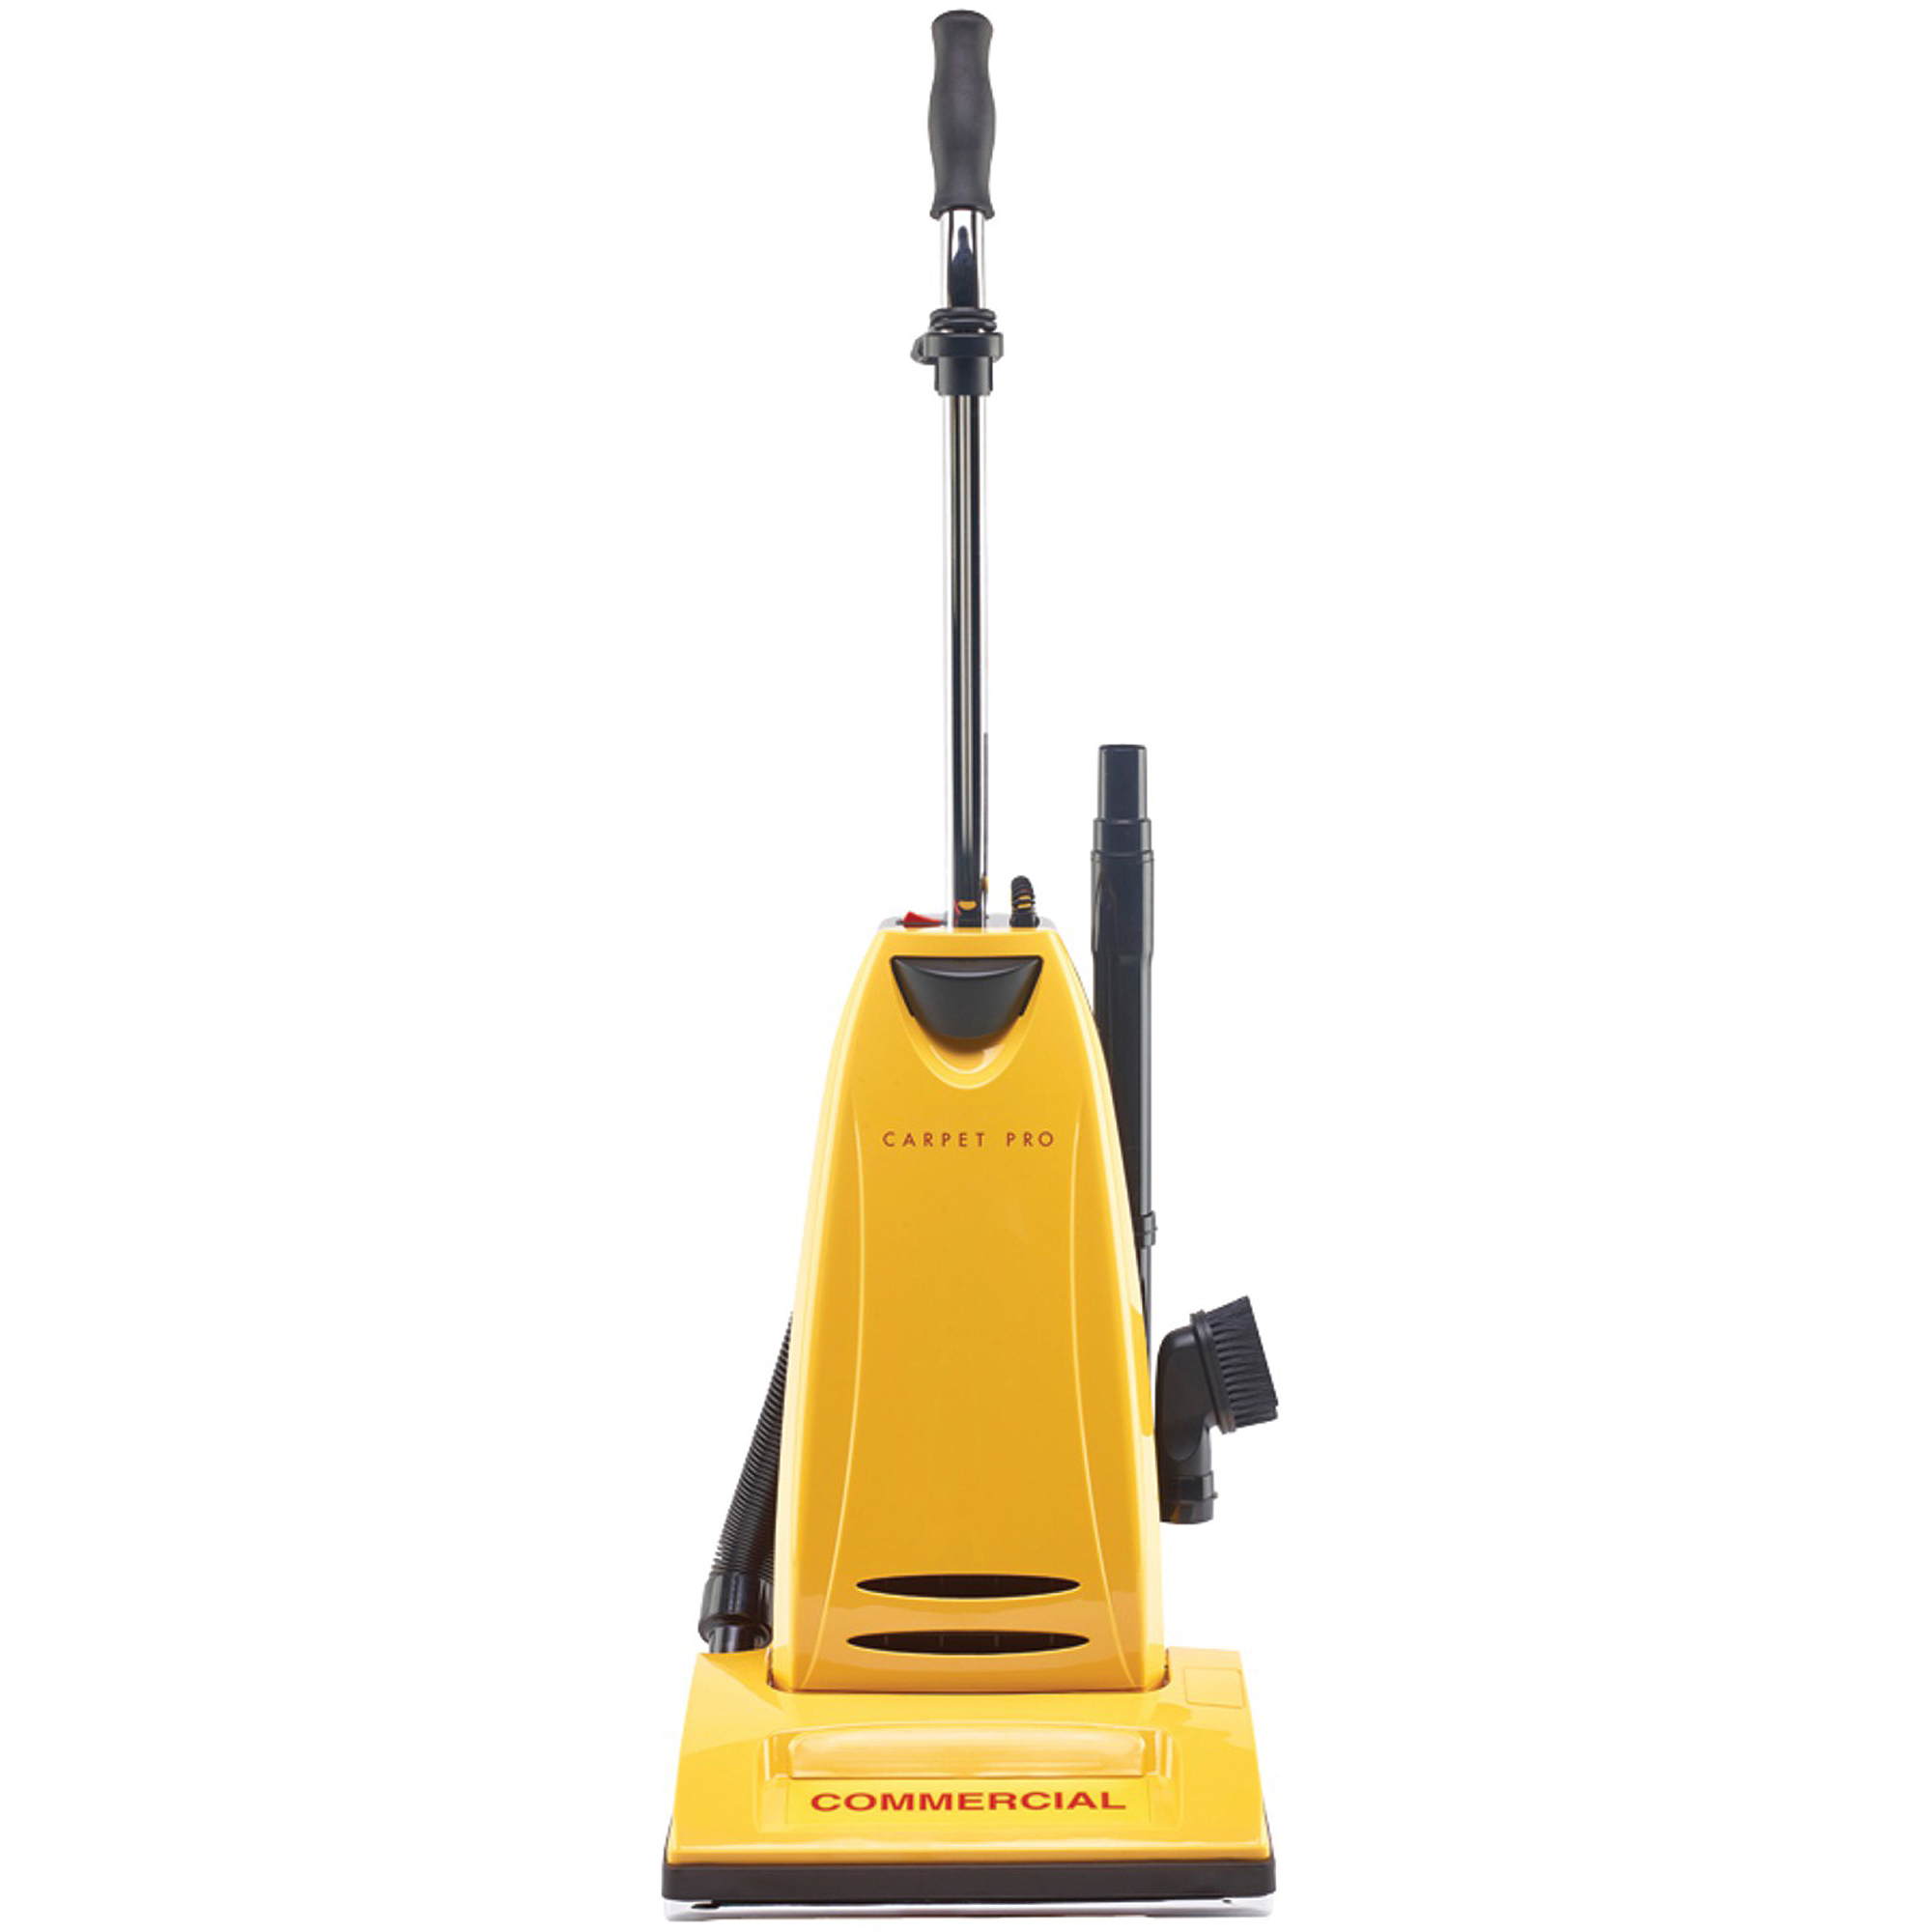 Carpet Pro True Commercial Bag Upright Vacuum, CPU 2T   Walmart.com